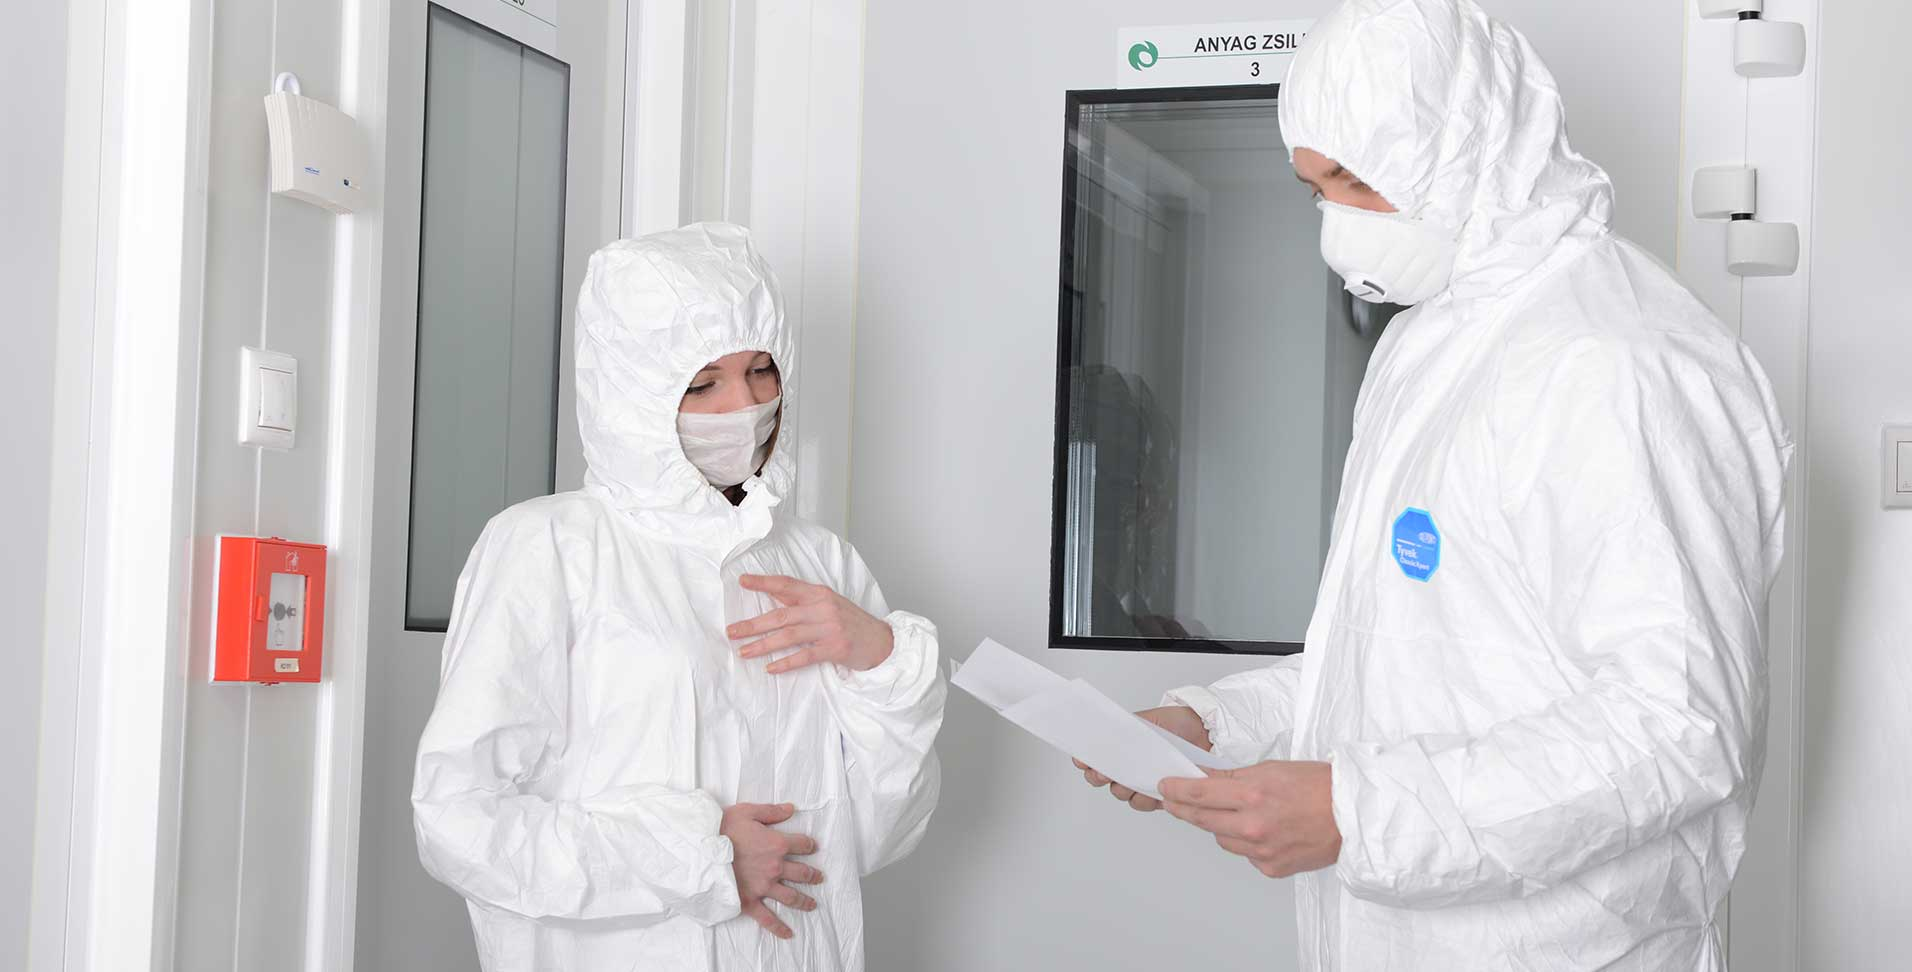 How To Train Personnel For Working In a Clean Room